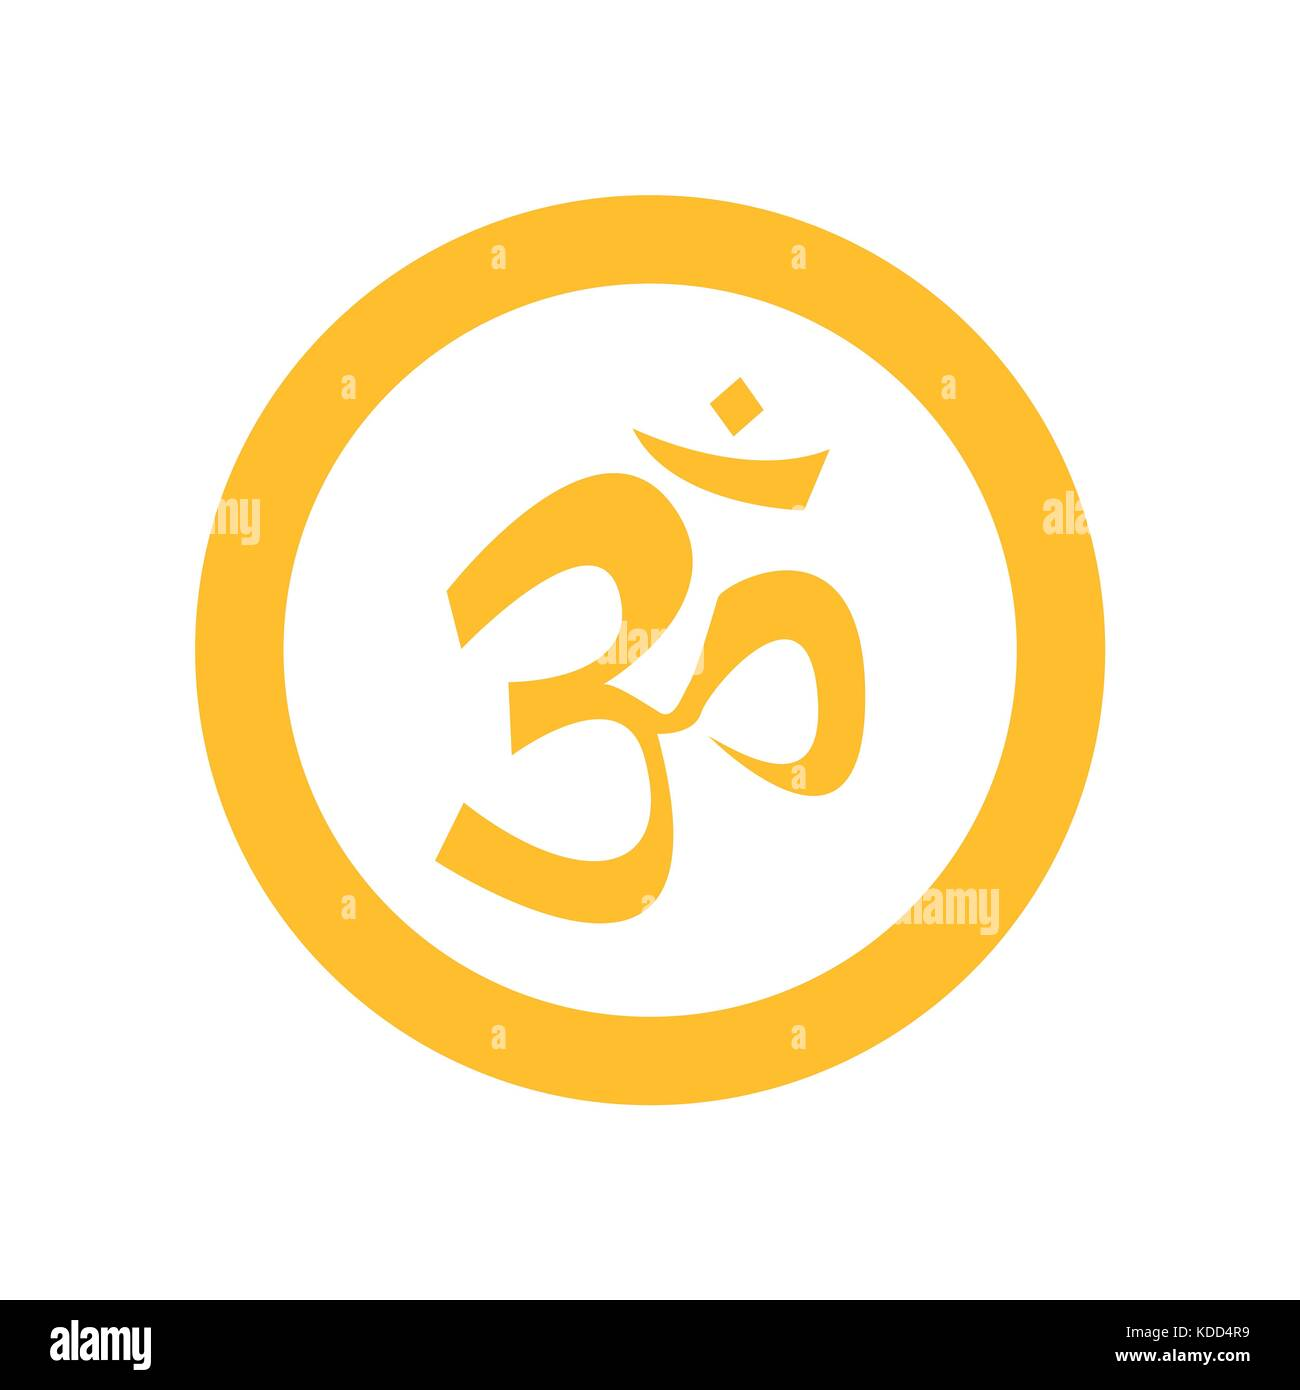 Om symbol cut out stock images pictures alamy simple circular yellow om symbol stock image biocorpaavc